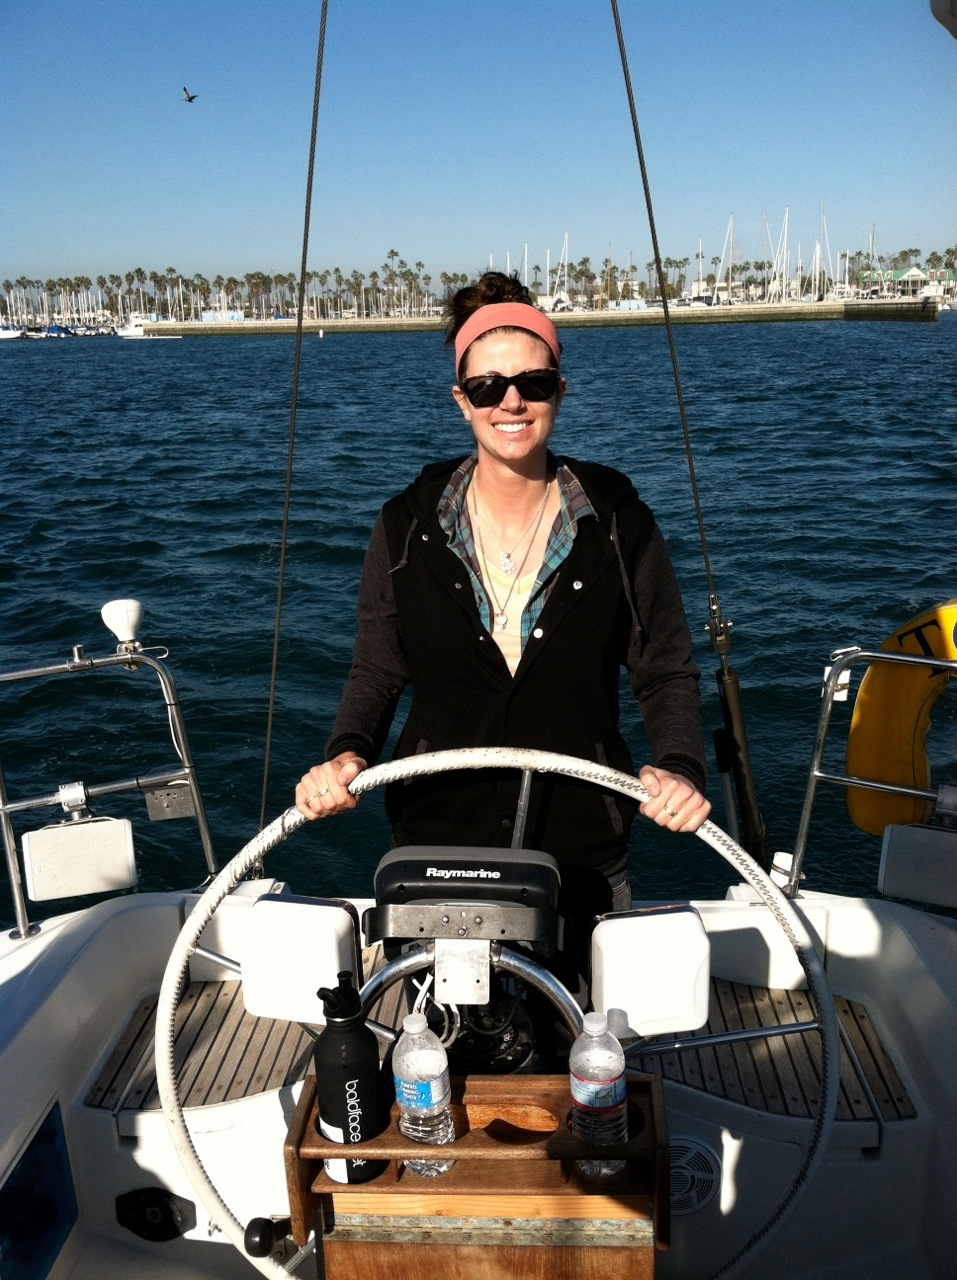 Sailing my Aunt and Uncles boat off the coast of Huntington beach. - © Molly Garland